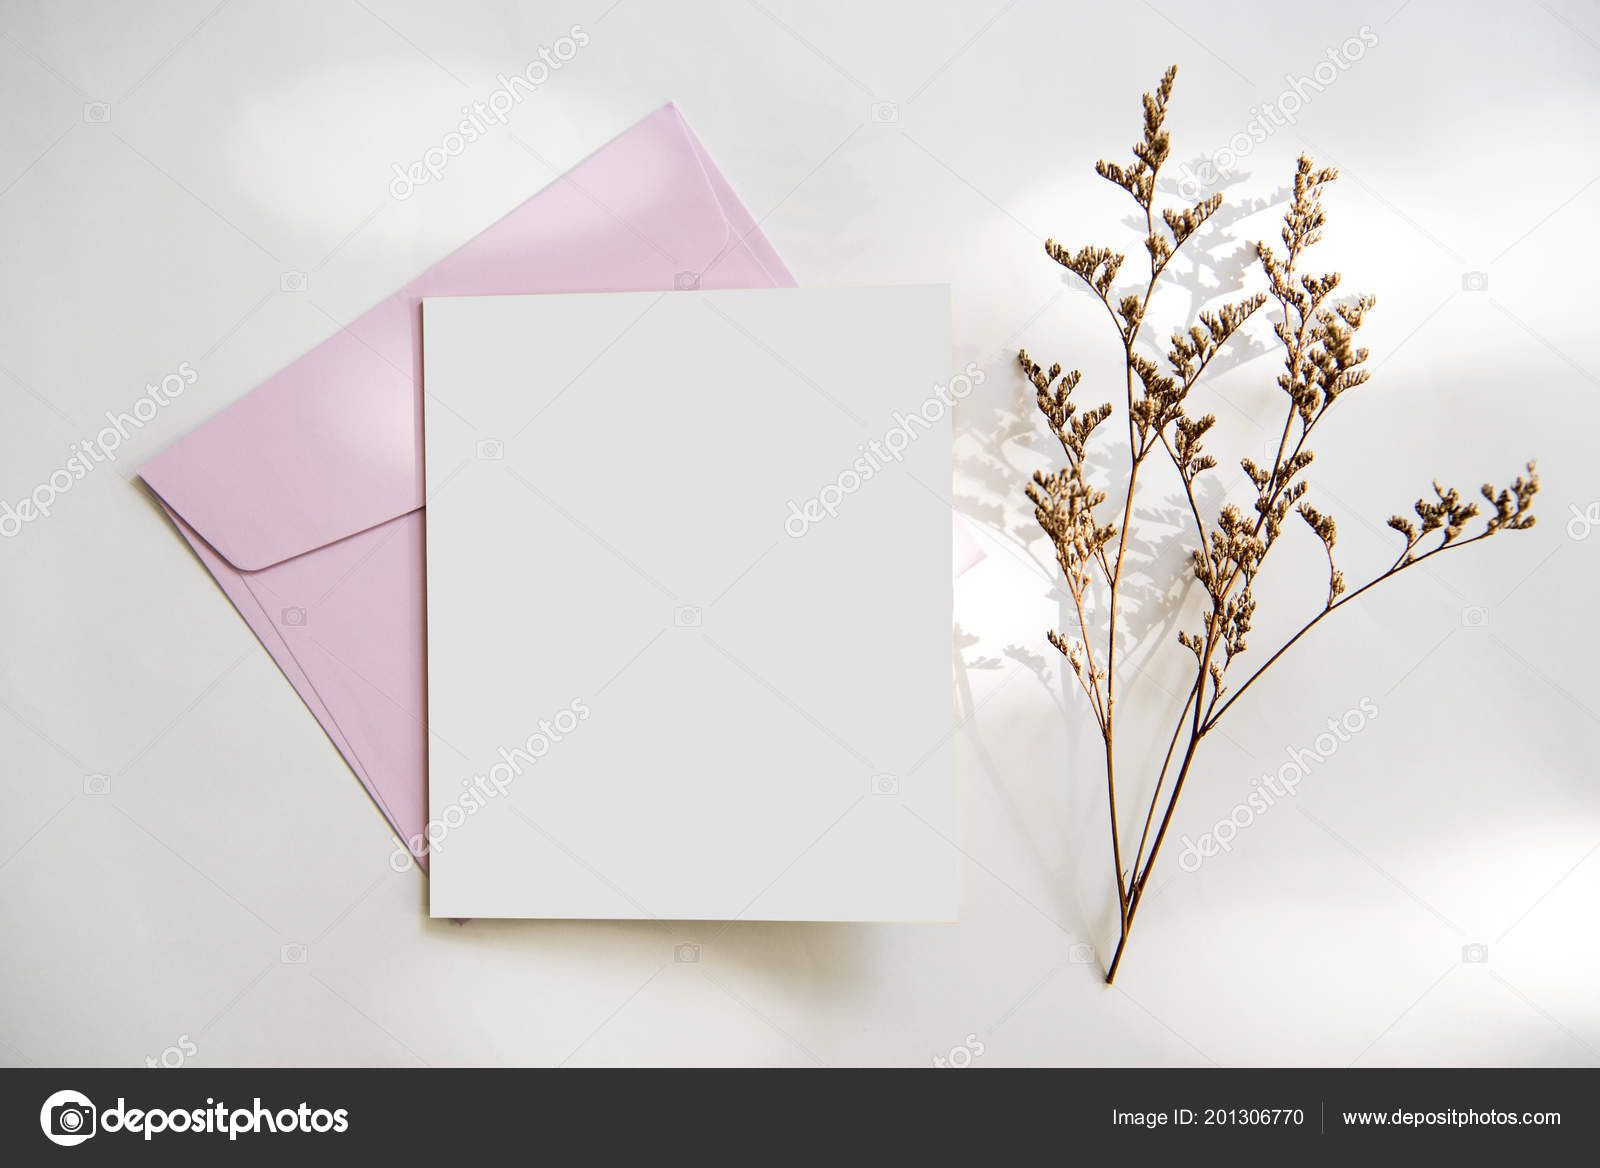 10 Awesome Flower Envelope Card Template In 2020 Blank Cards Blank Cards And Envelopes Gift Recommendations